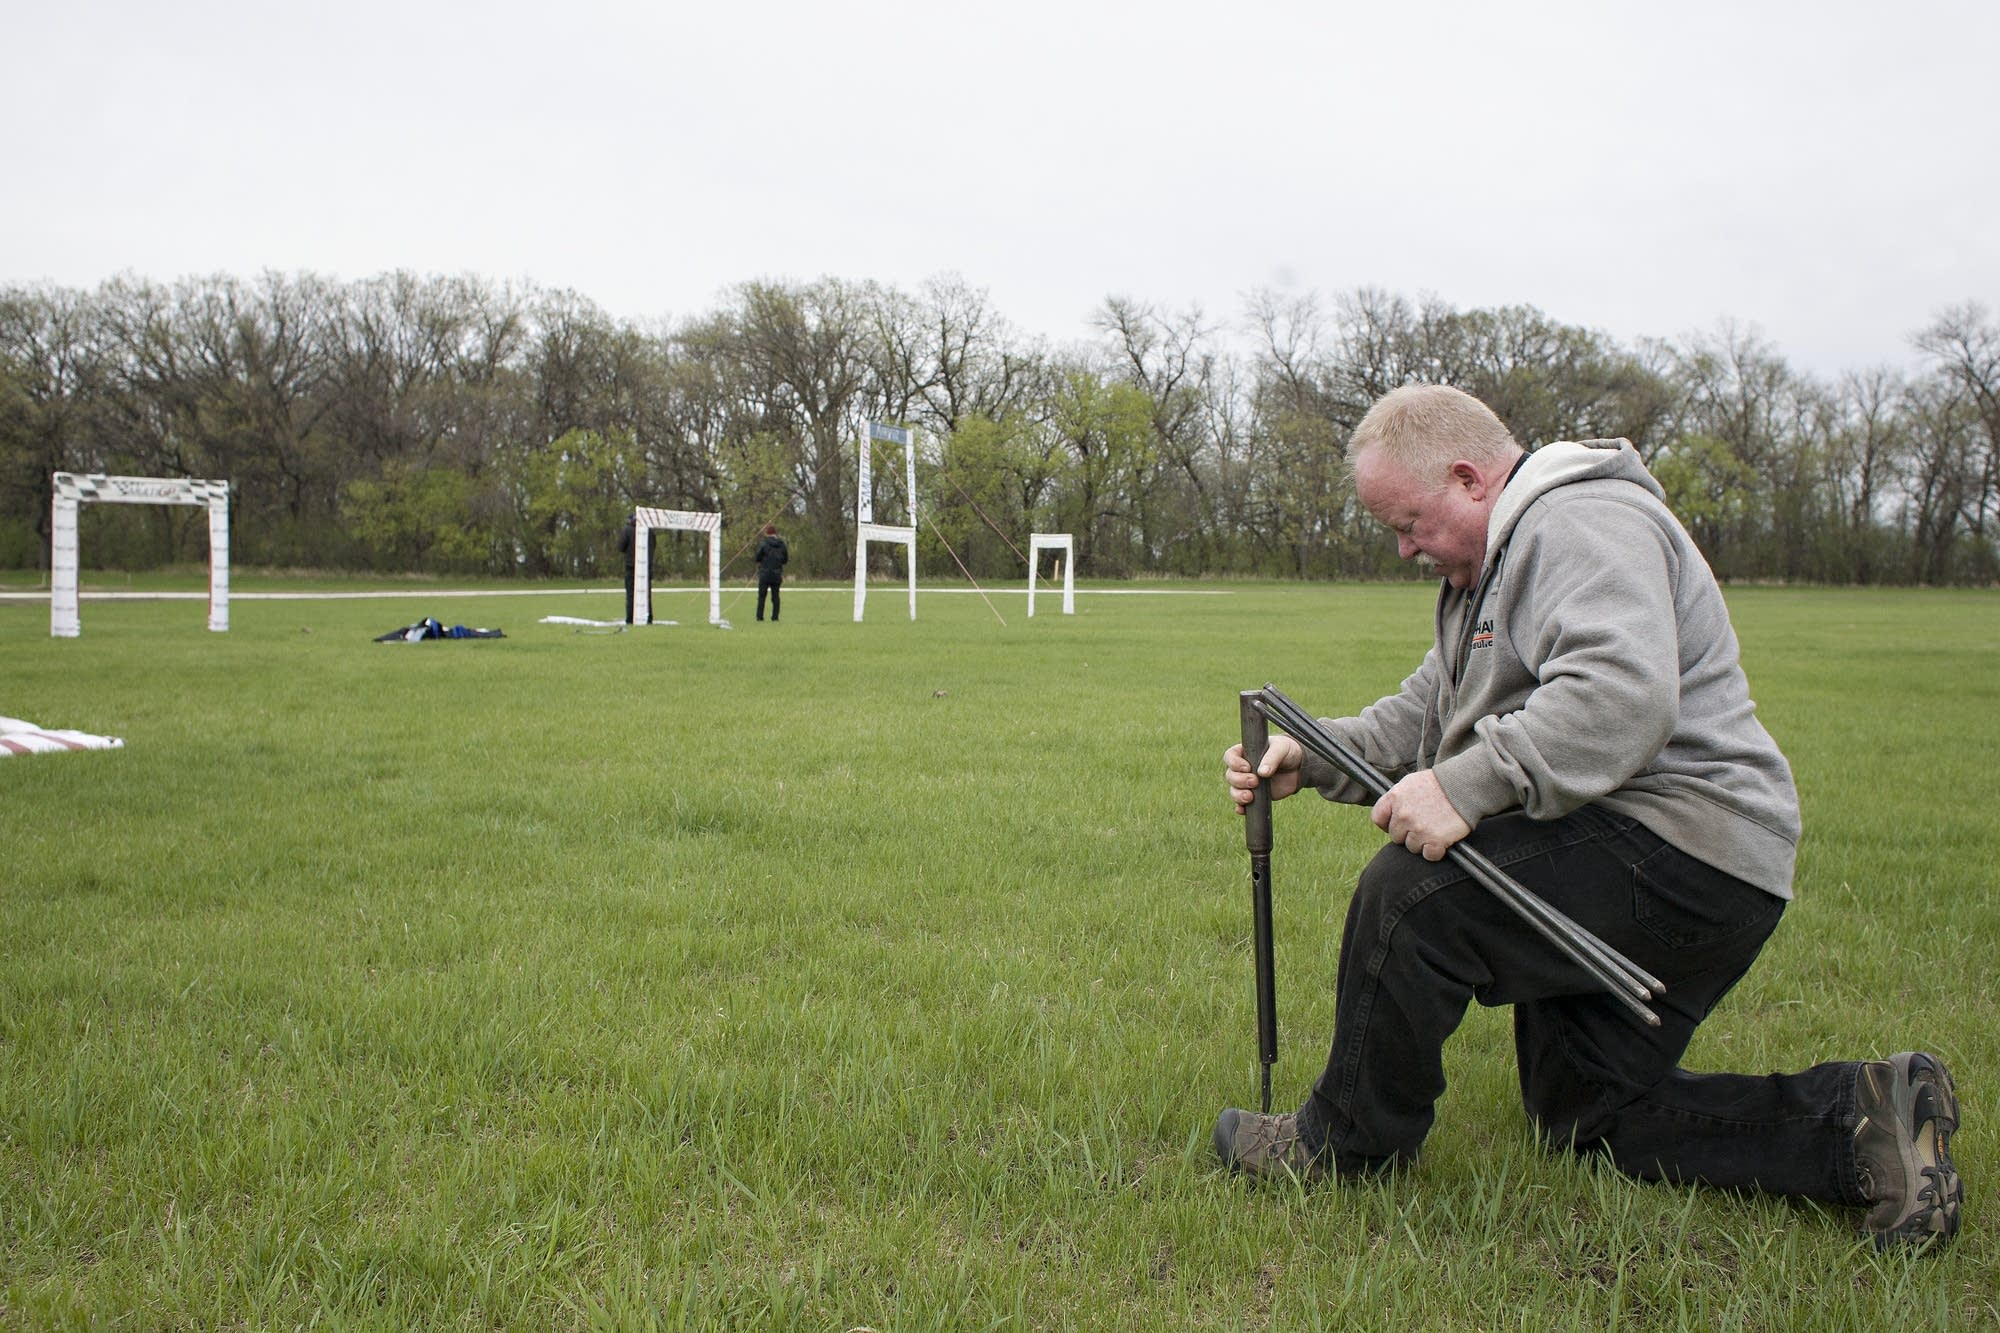 Shawn Spears of Moorhead, Minn., helps set up a course before a drone race.